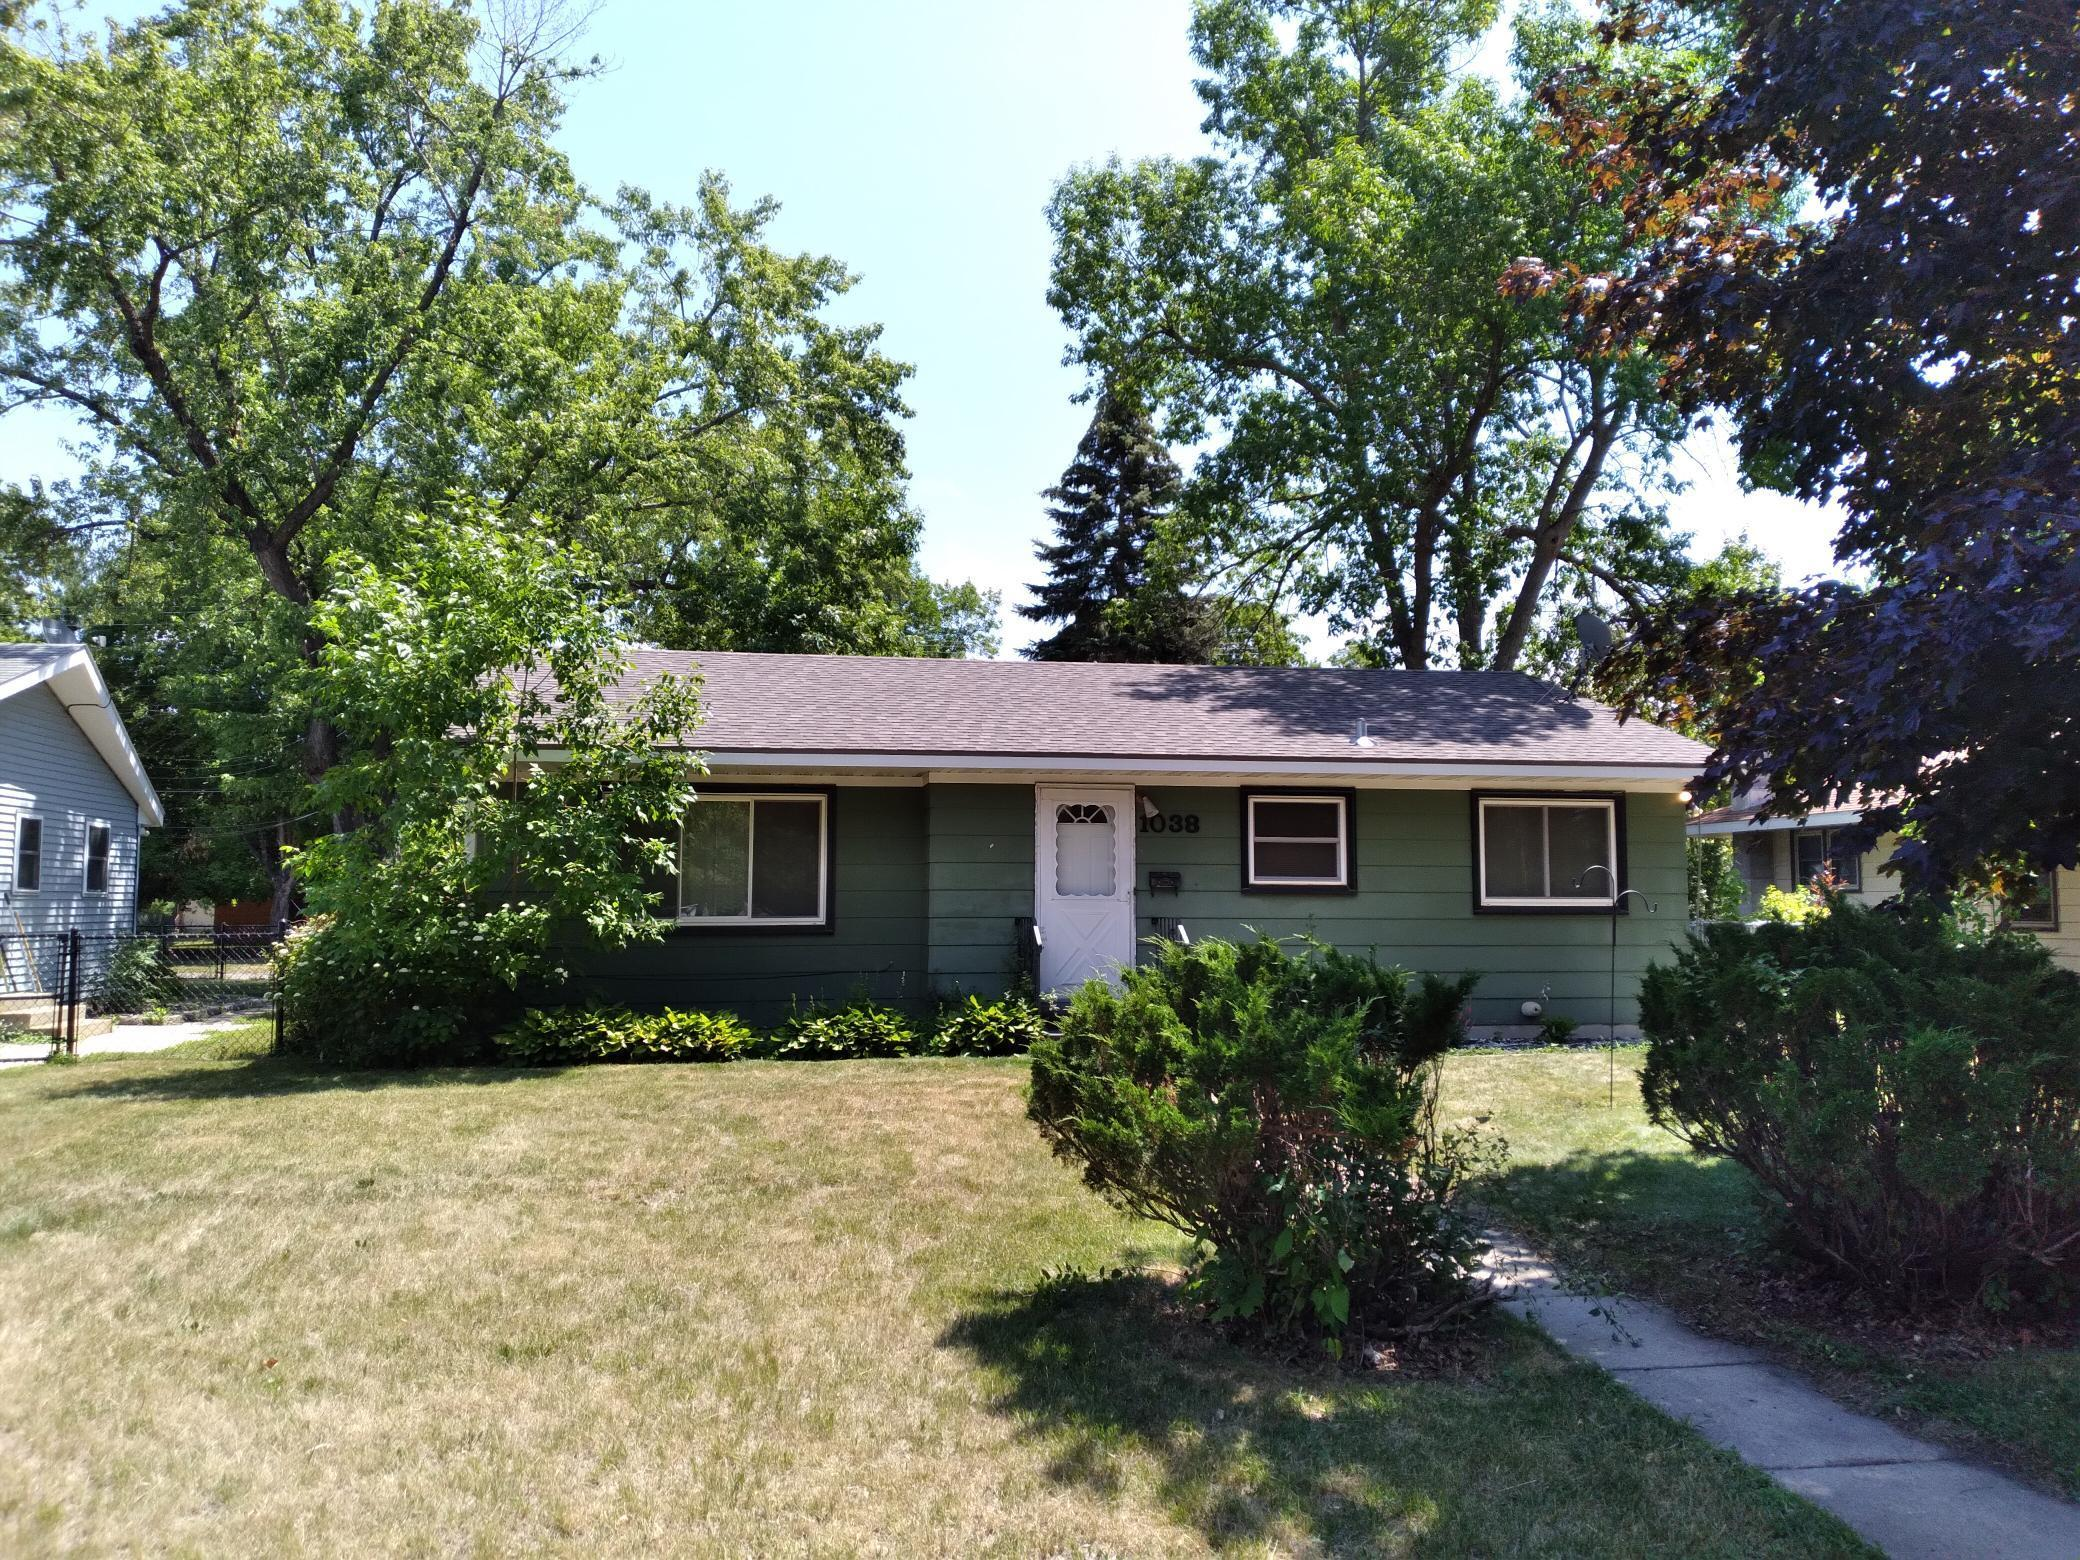 This 3 bedroom and 2 bath home is priced to sell. Windows, shingles on the home, furnace, & central air have been replaced over the years. Spacious lot.